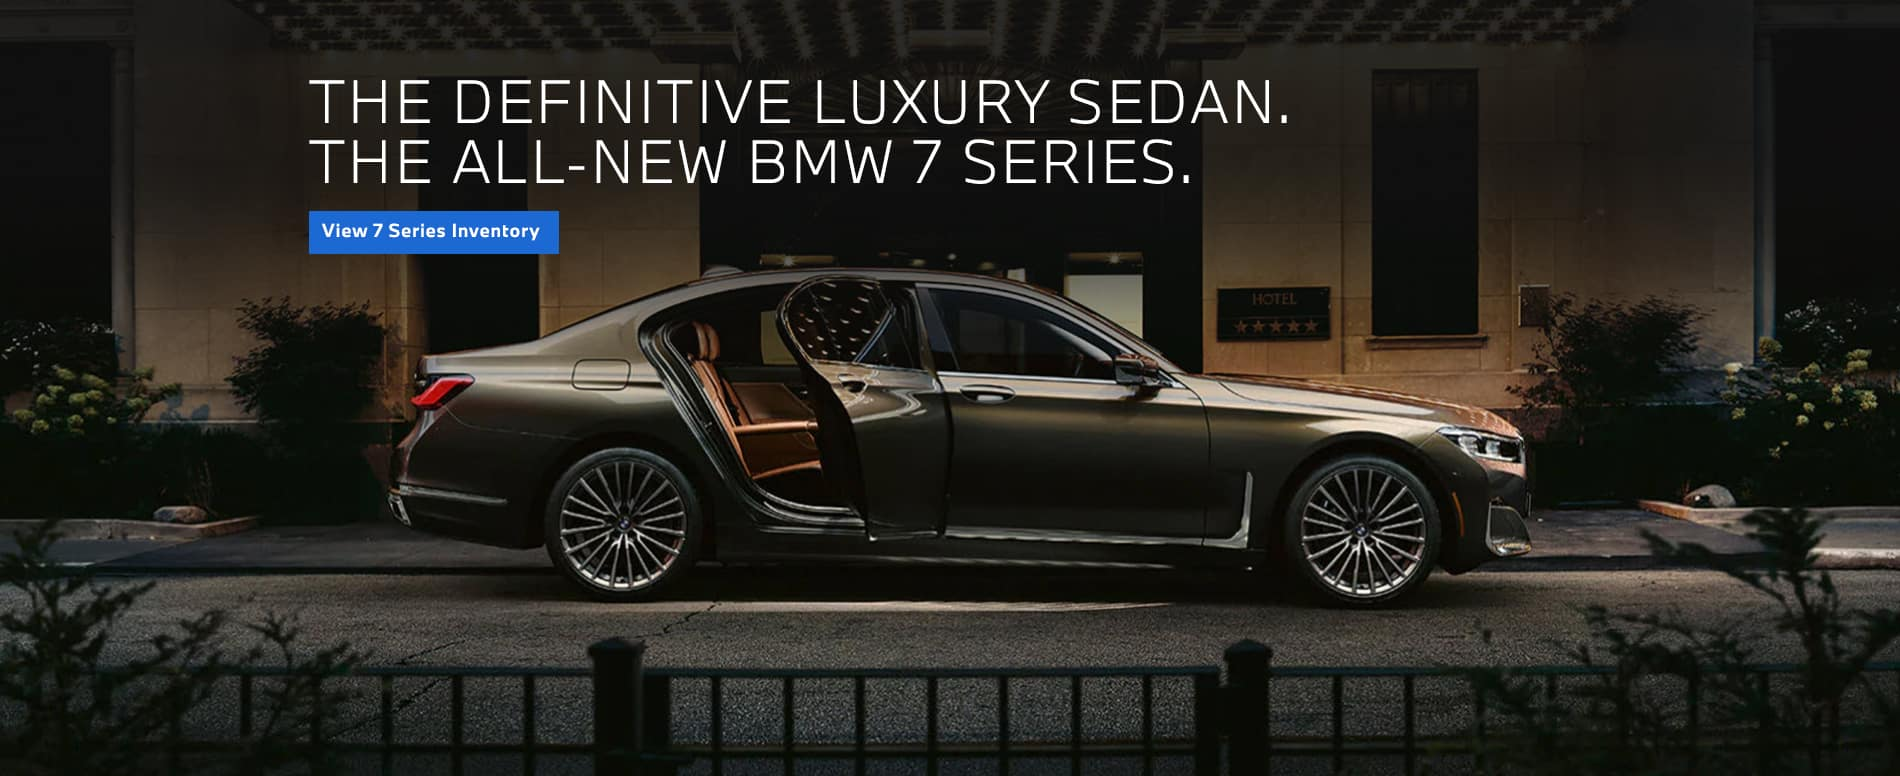 GET-YOUR-2021-BMW-7-SERIES-TODAY-CLICK-TO-VIEW-INVENTORY